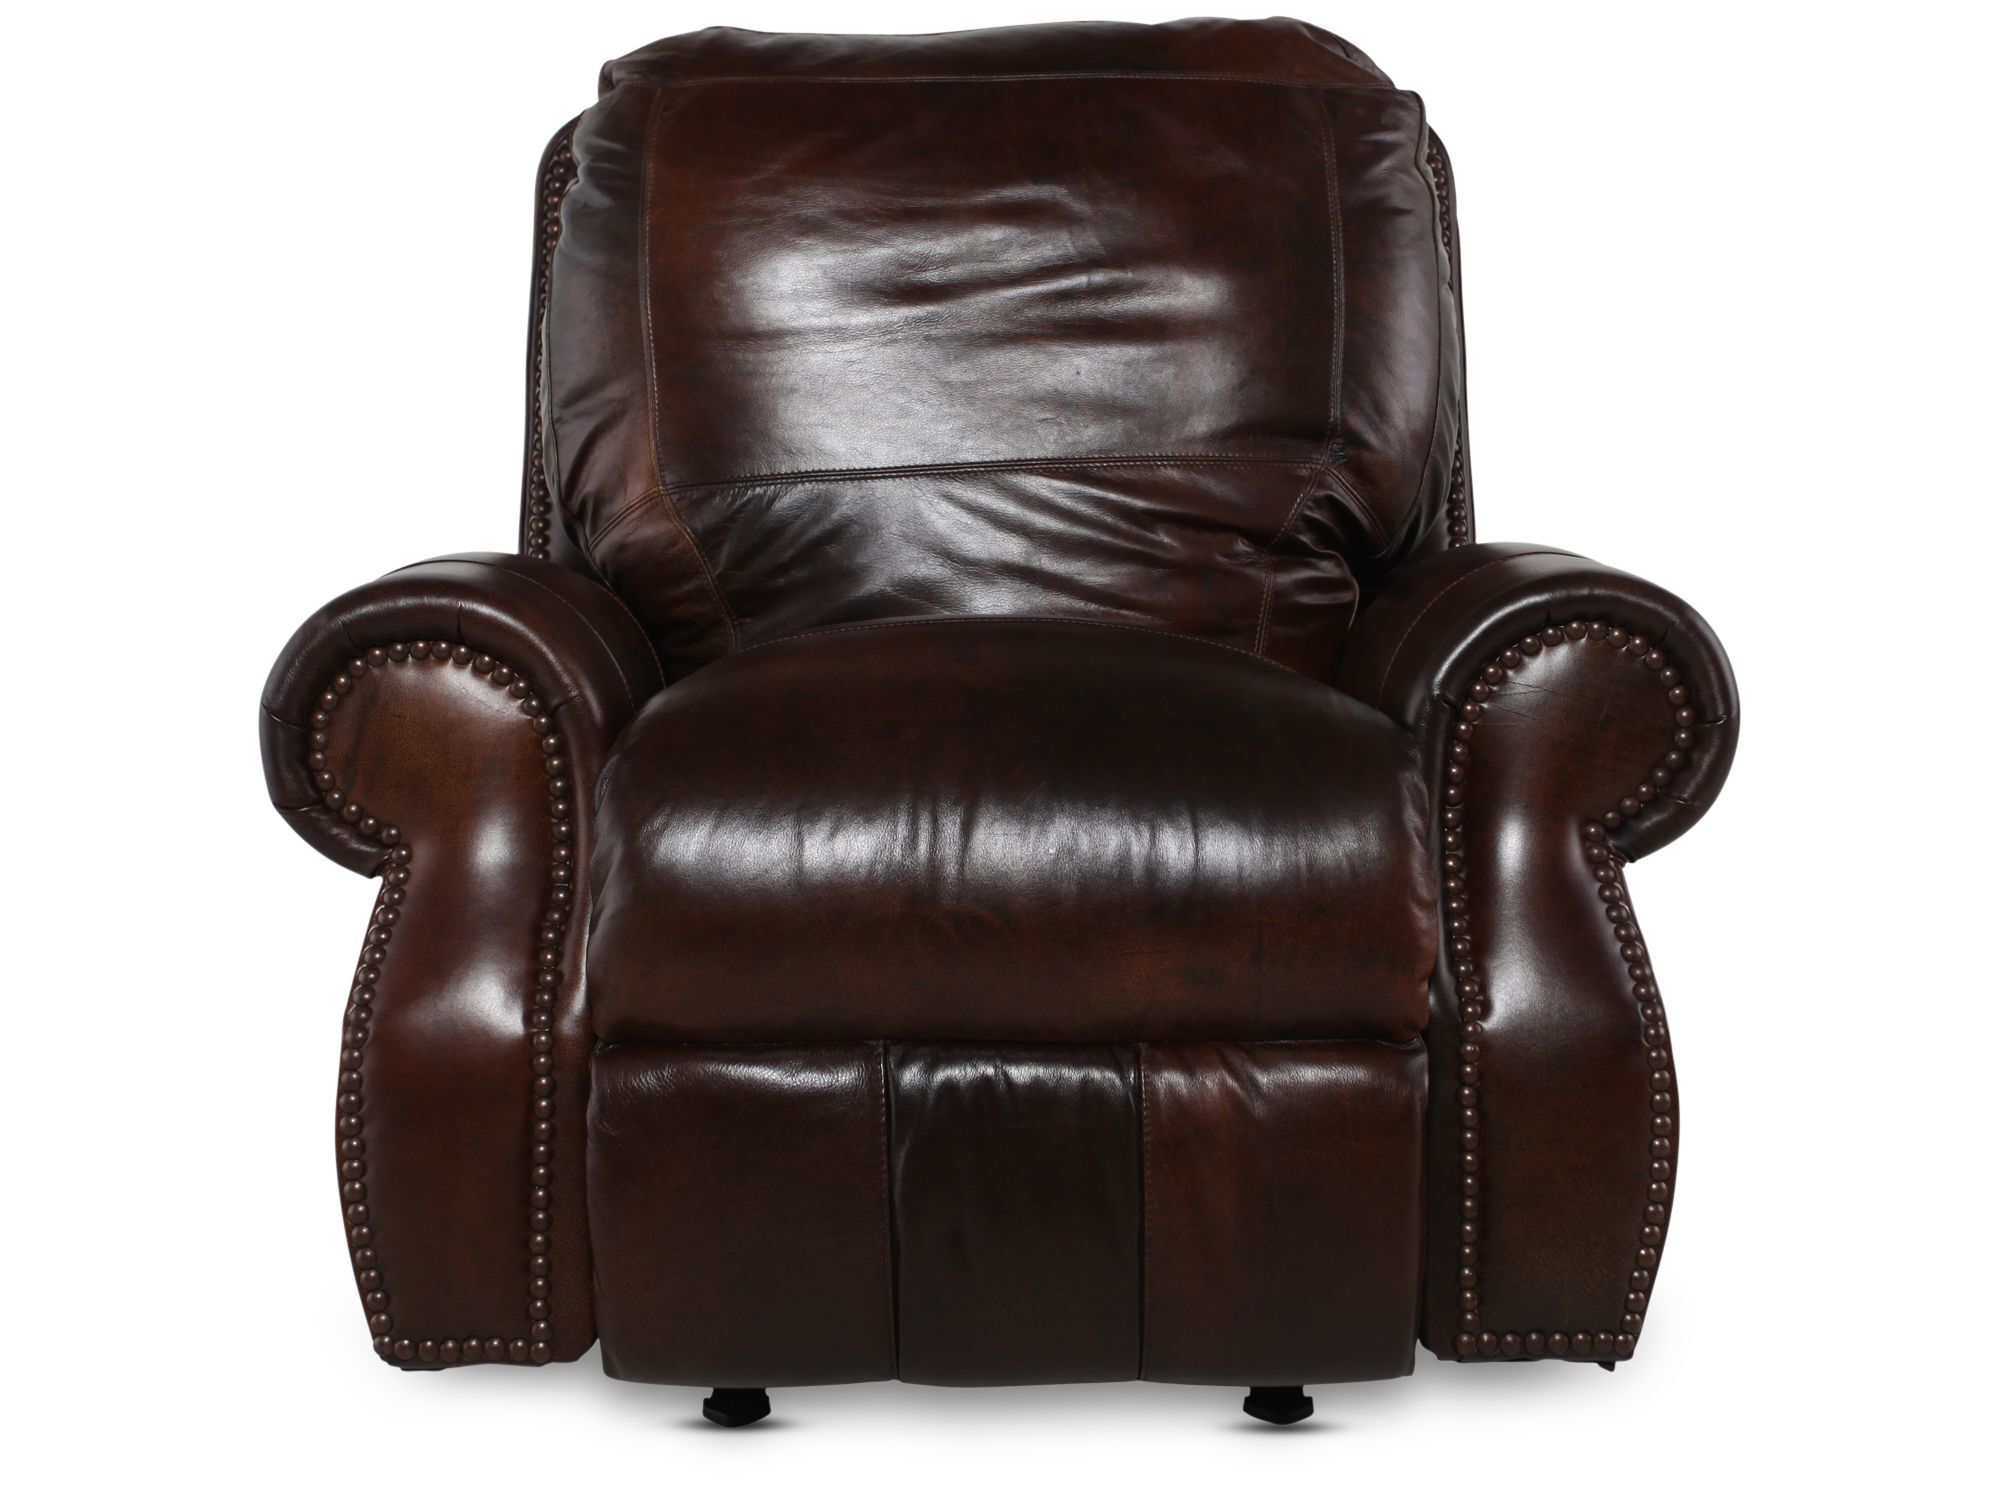 Images Nailhead Accented 44u0026quot; Leather Rocker Recliner In Brown  Nailhead Accented 44u0026quot; Leather Rocker Recliner In Brown